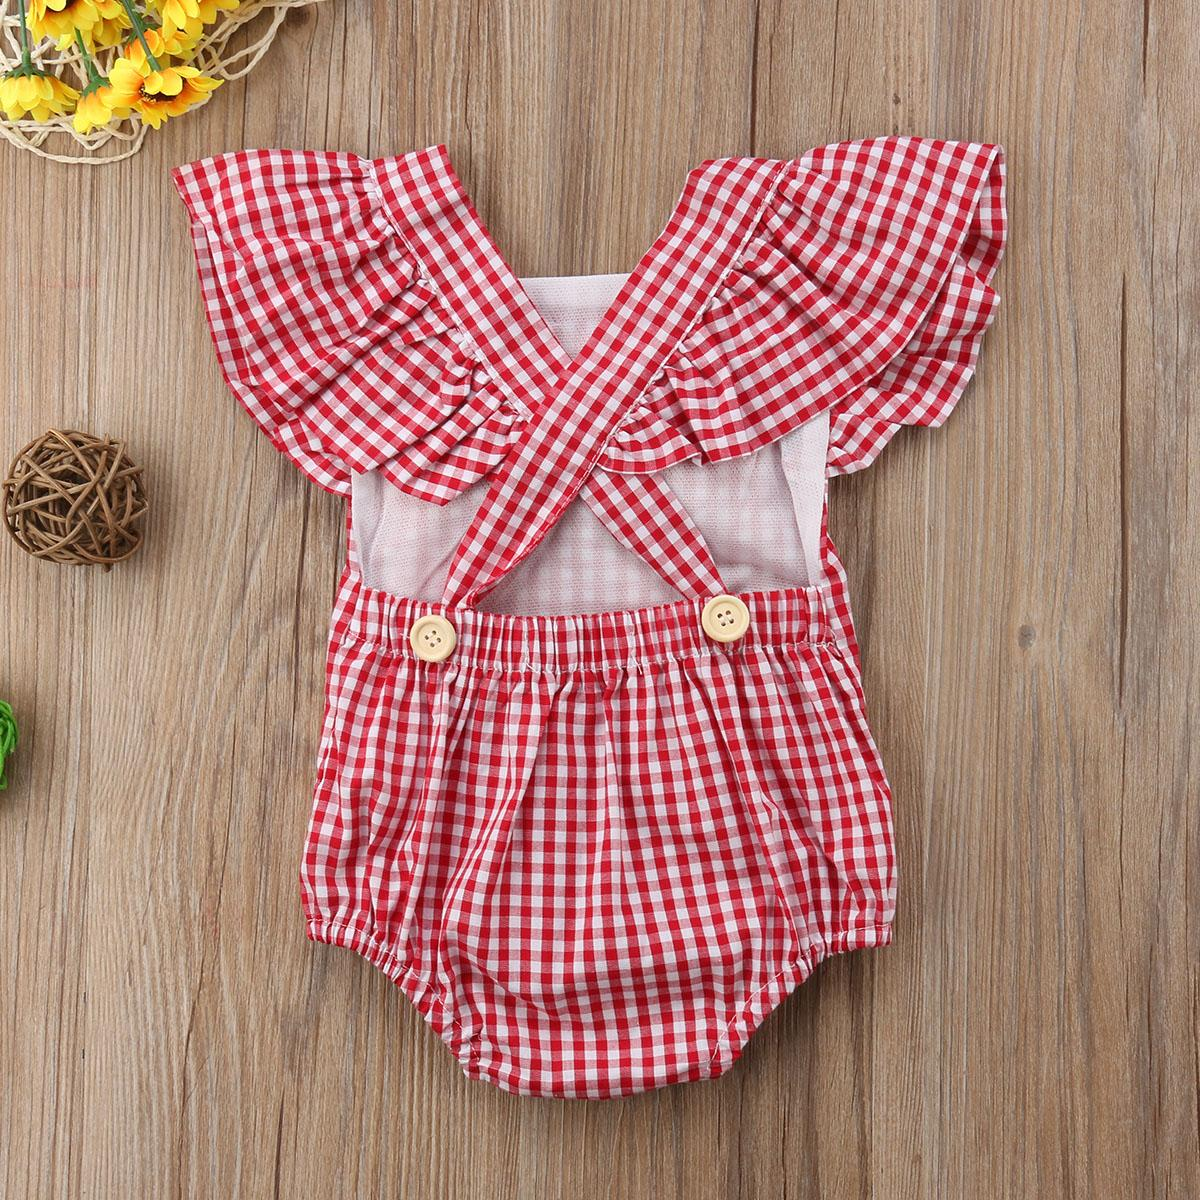 2018 Summer Fashion Newborn Baby Kids Girl Grid Romper Jumpsuit Playsuit Sunsuit Striped Outfits Clothes Set